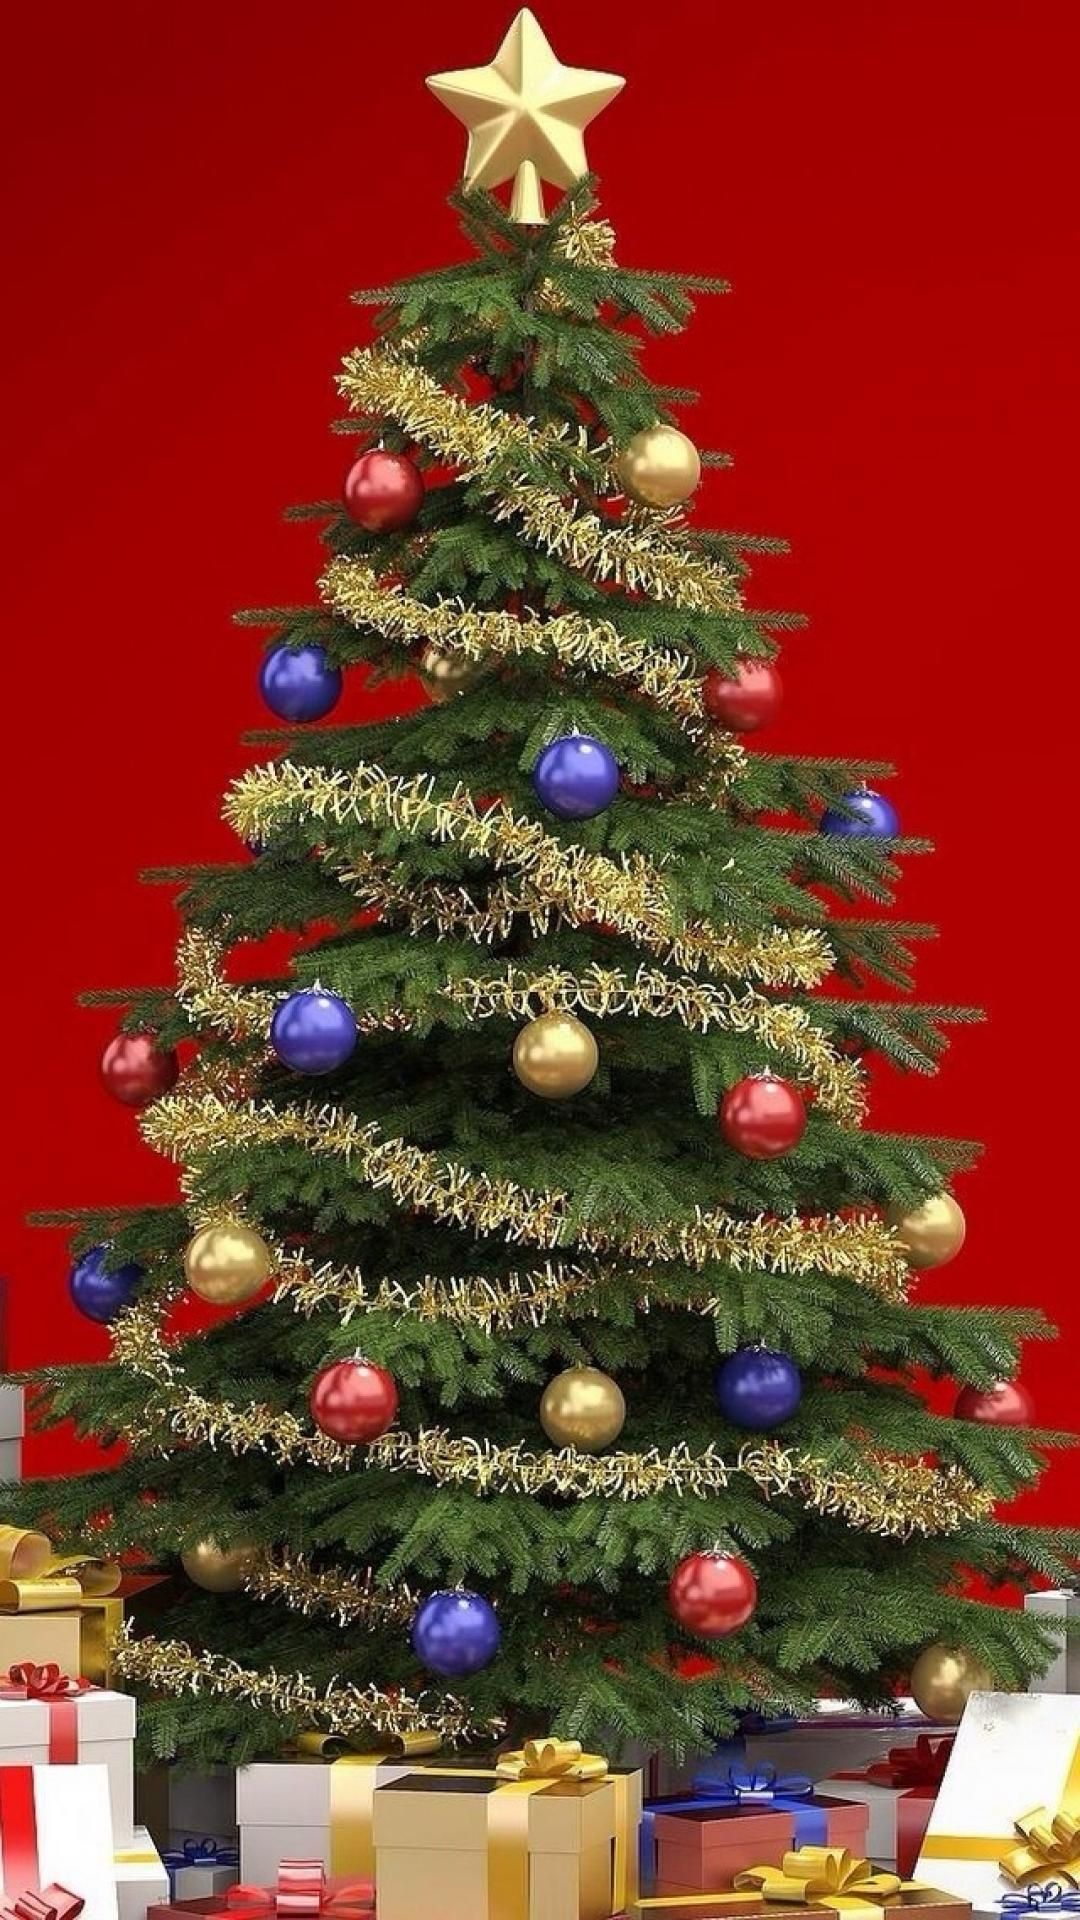 Presents Around Christmas Tree iPhone 6 wallpaper (With